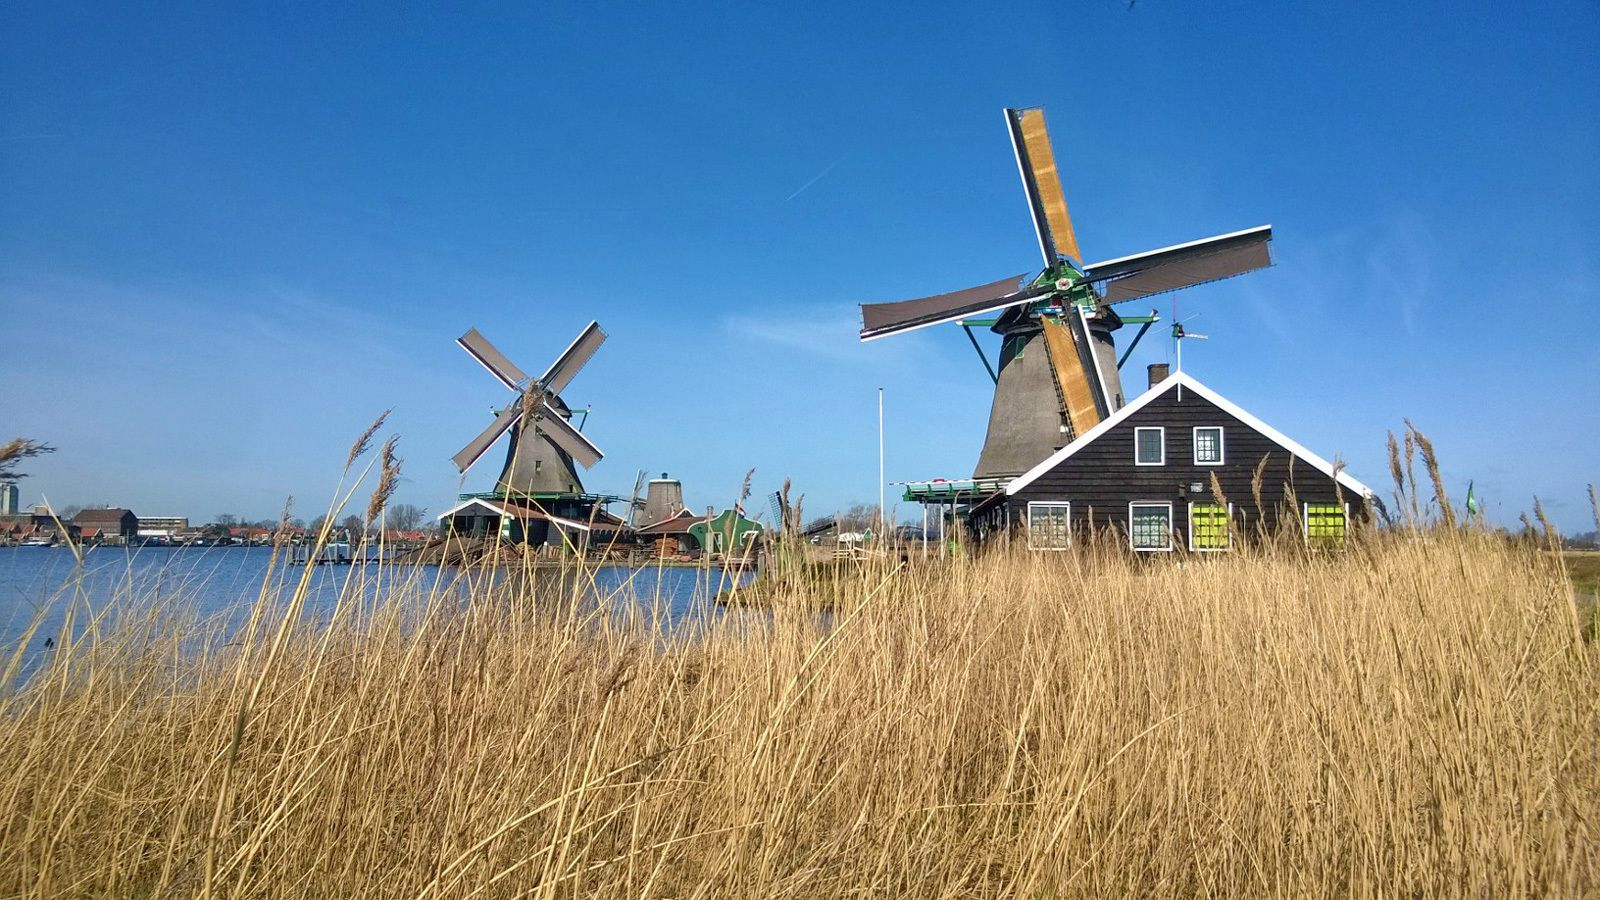 view of the windmills from tall dry grass in Amsterdam